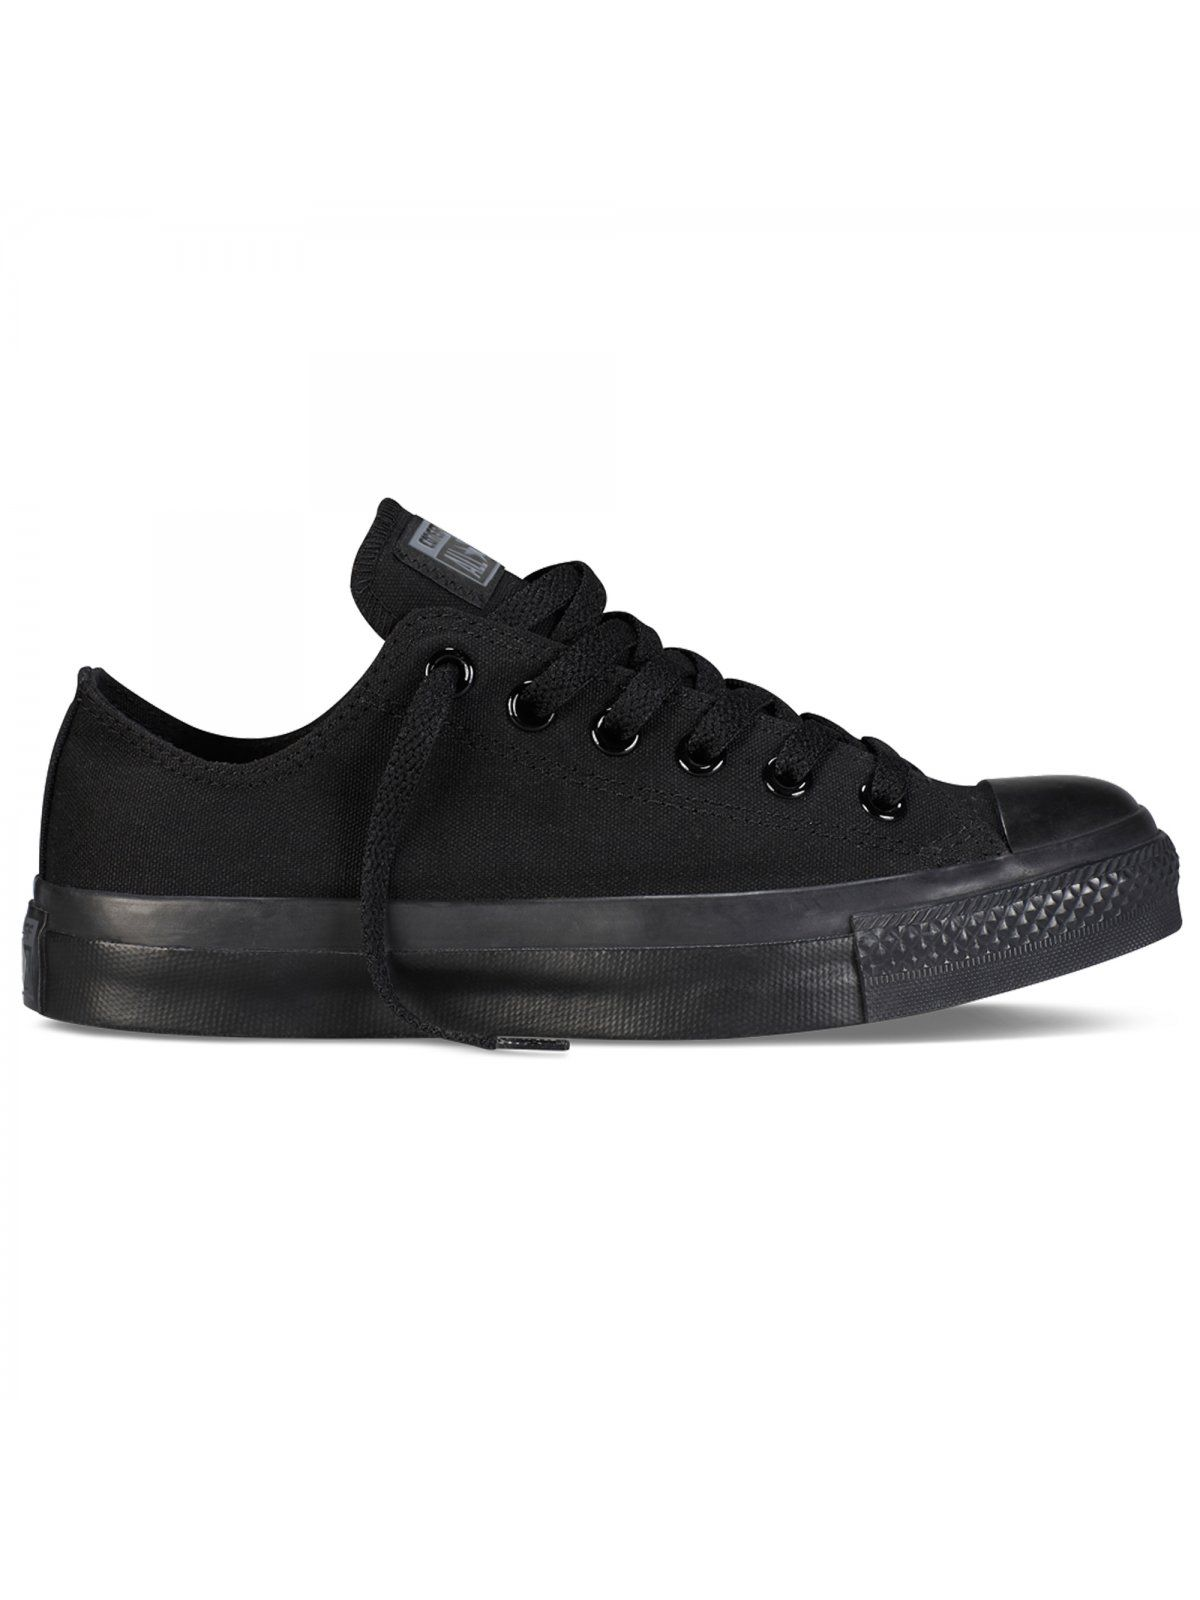 Converse All Star Unisex Chuck Taylor Low Top - Black Monochrome